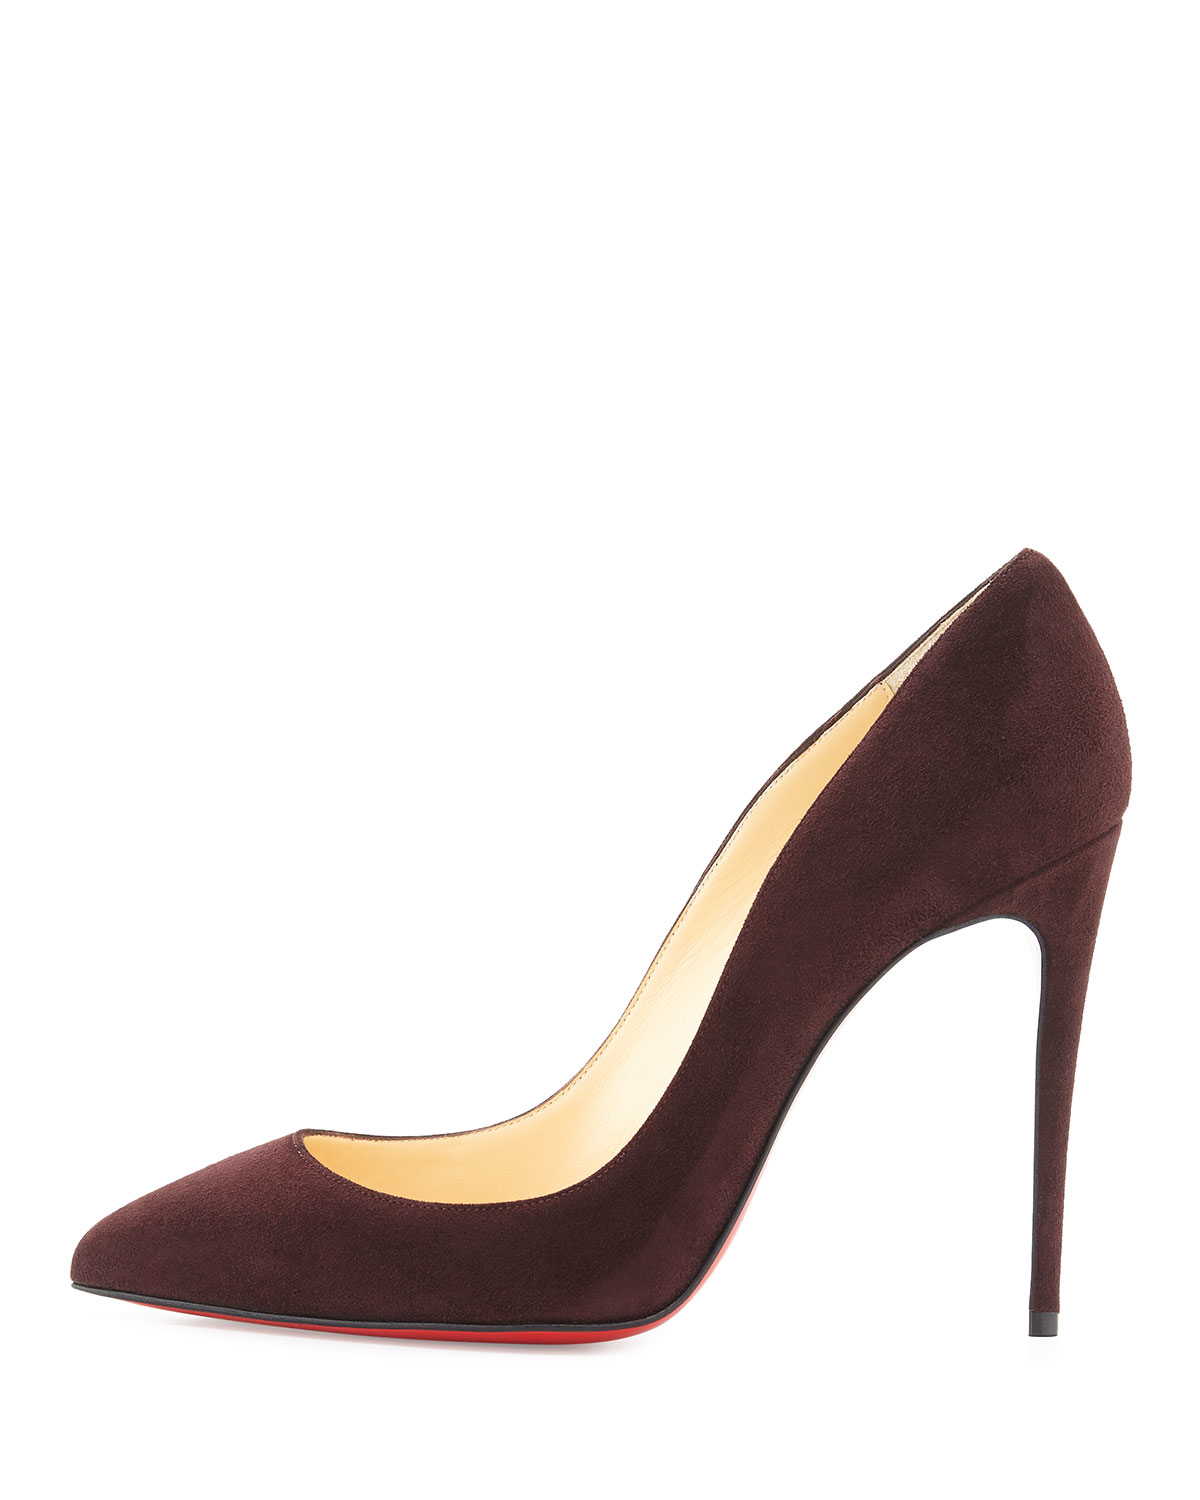 fake louboutin shoes - Christian louboutin Pigalle Follies Suede Point-Toe Red-Sole Pumps ...